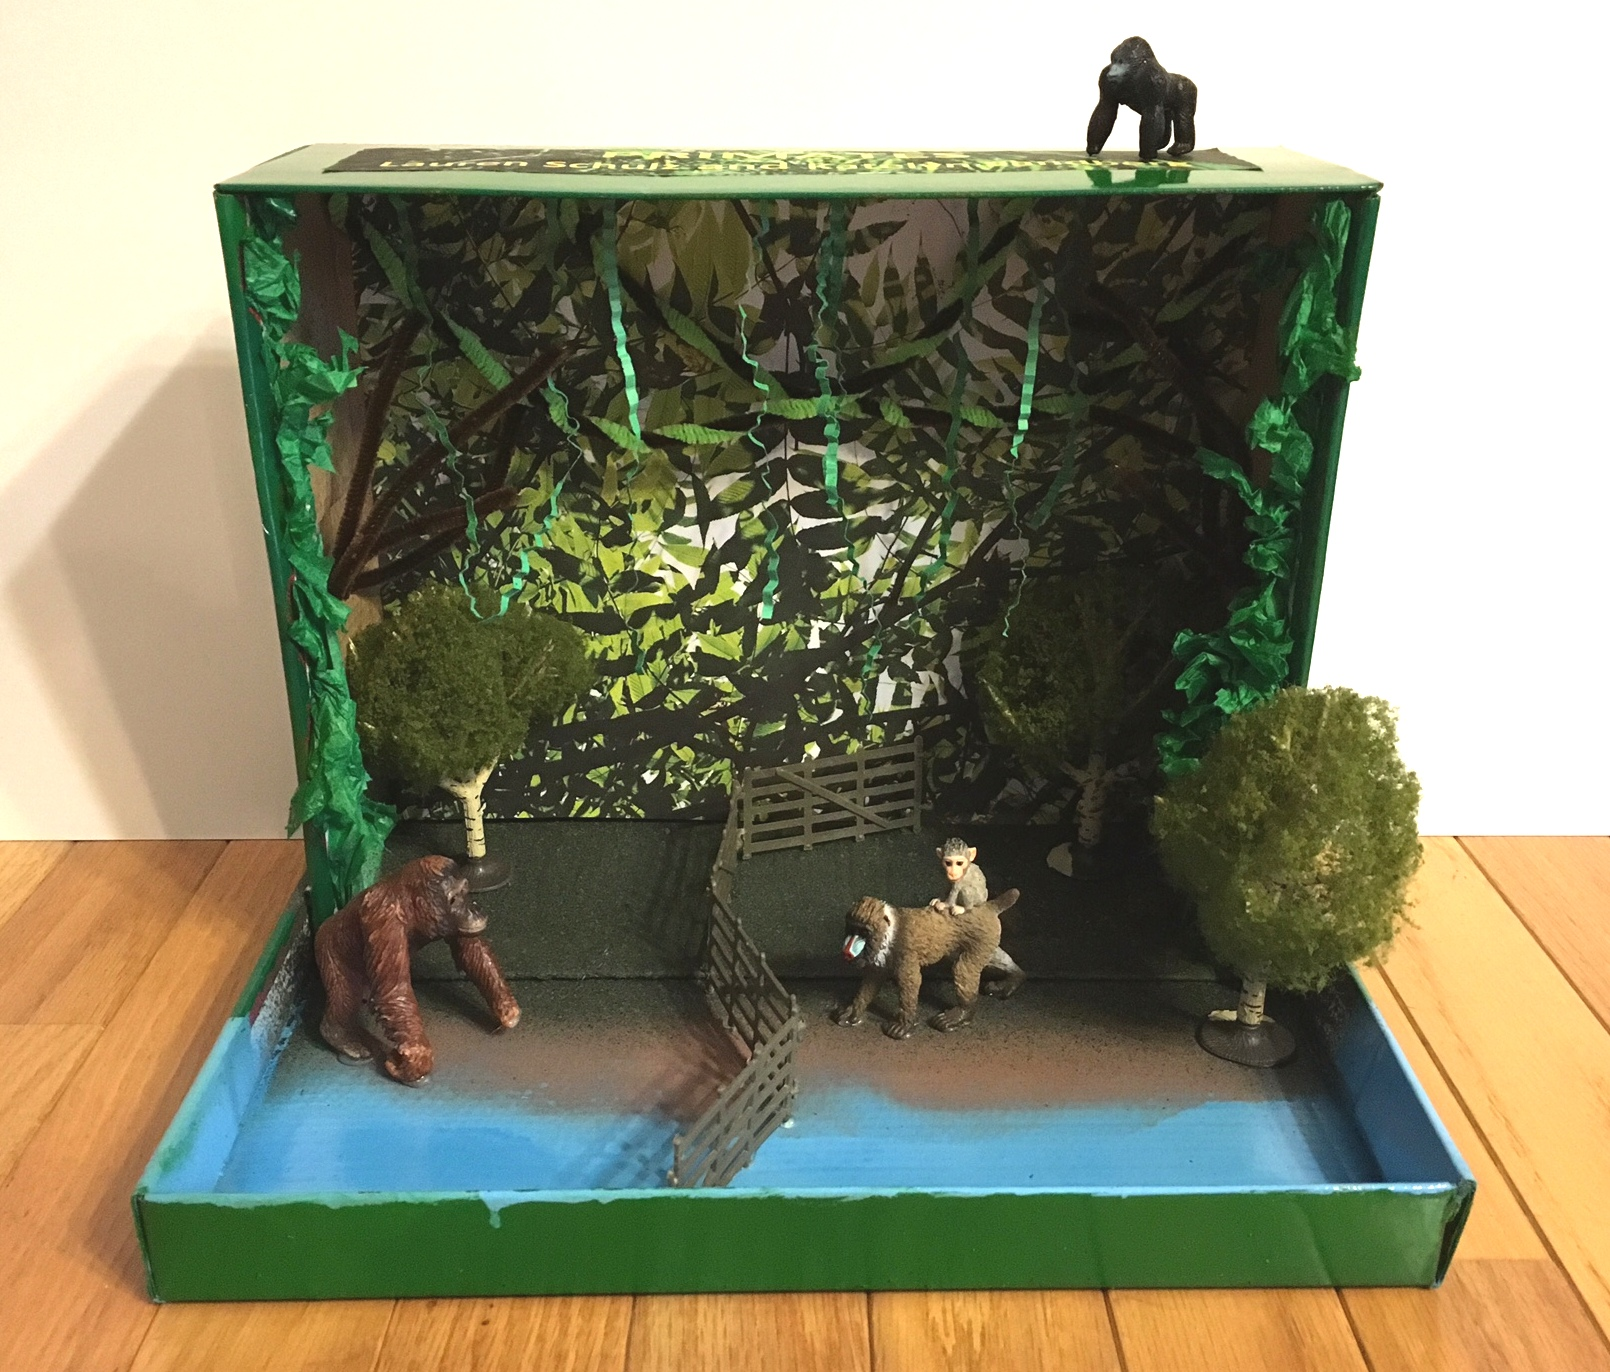 Primate Animal Habitat Diorama For Science Class